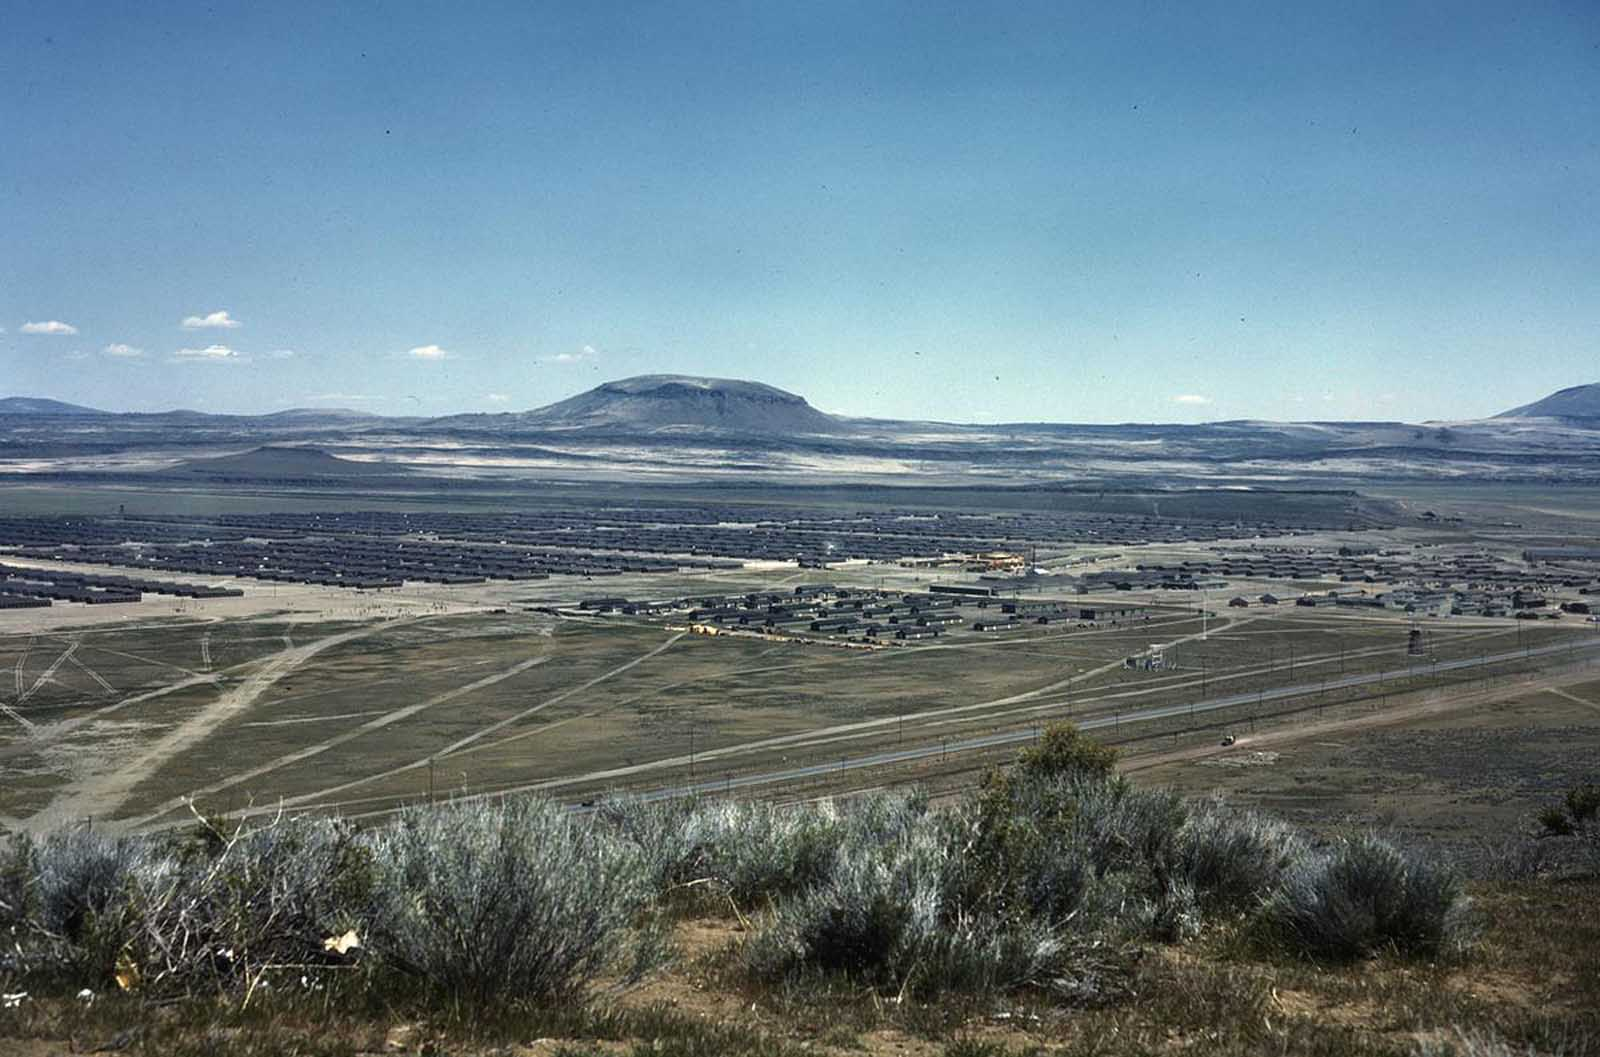 A wide view of the Tule Lake Relocation Center, in Newell, California. Photo taken in 1942 or 1943.